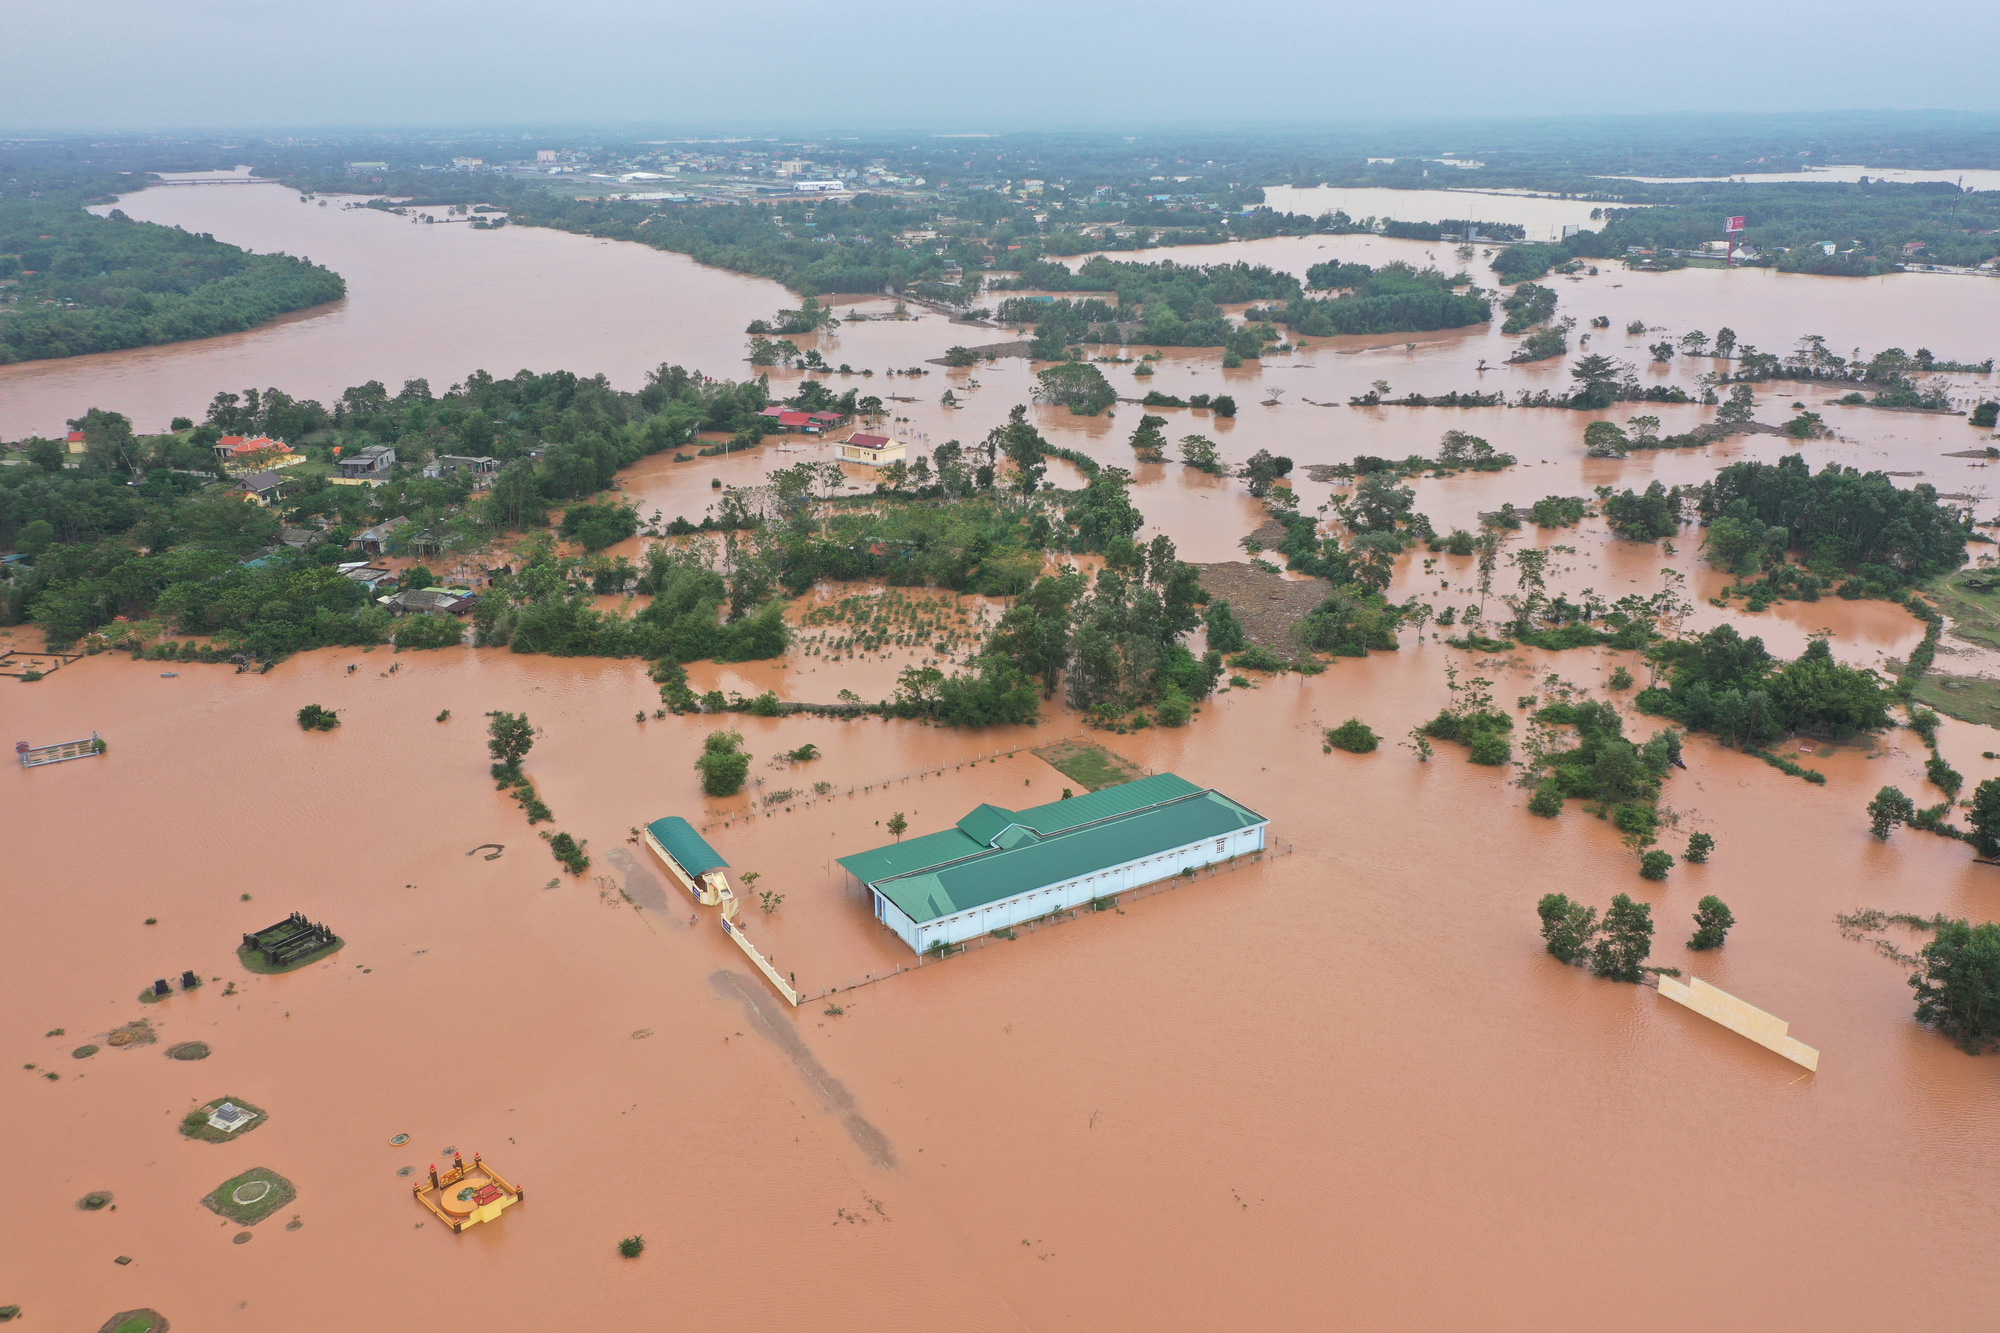 Serious inundation occurs in Tra Lien Tay Village in Quang Tri Province, Vietnam, October 10, 2020. Photo: Truong Trung / Tuoi Tre